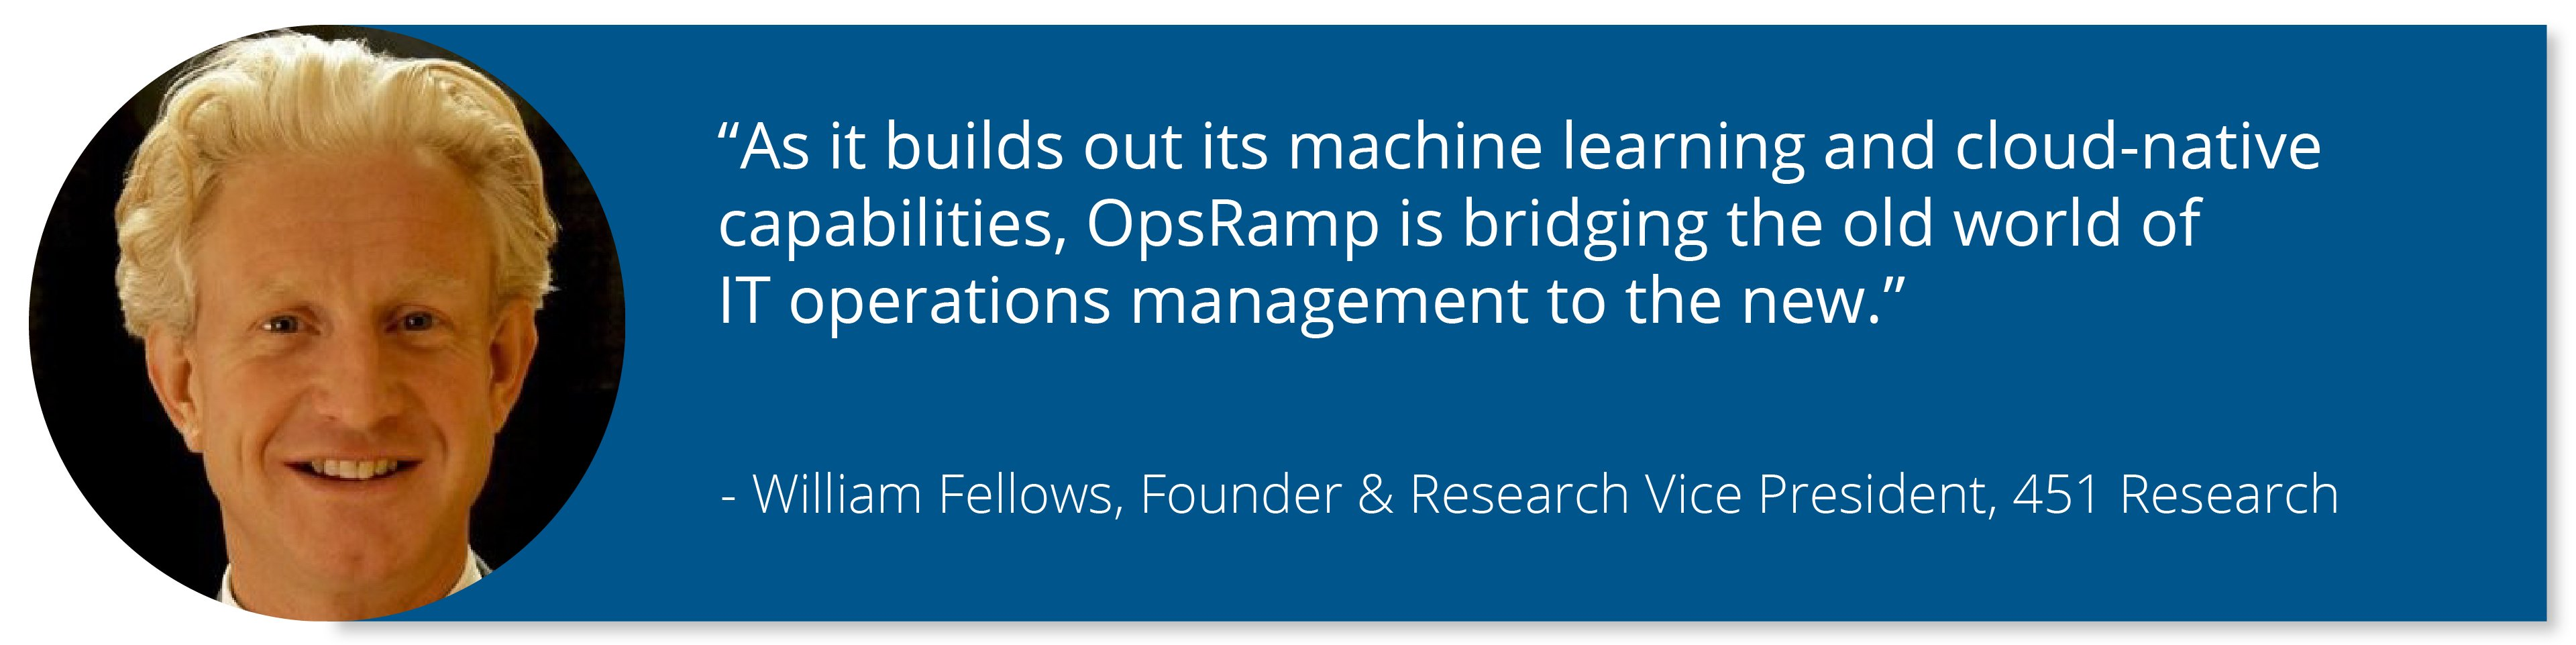 William Fellows-OpsRamp-Market-Impact-Report